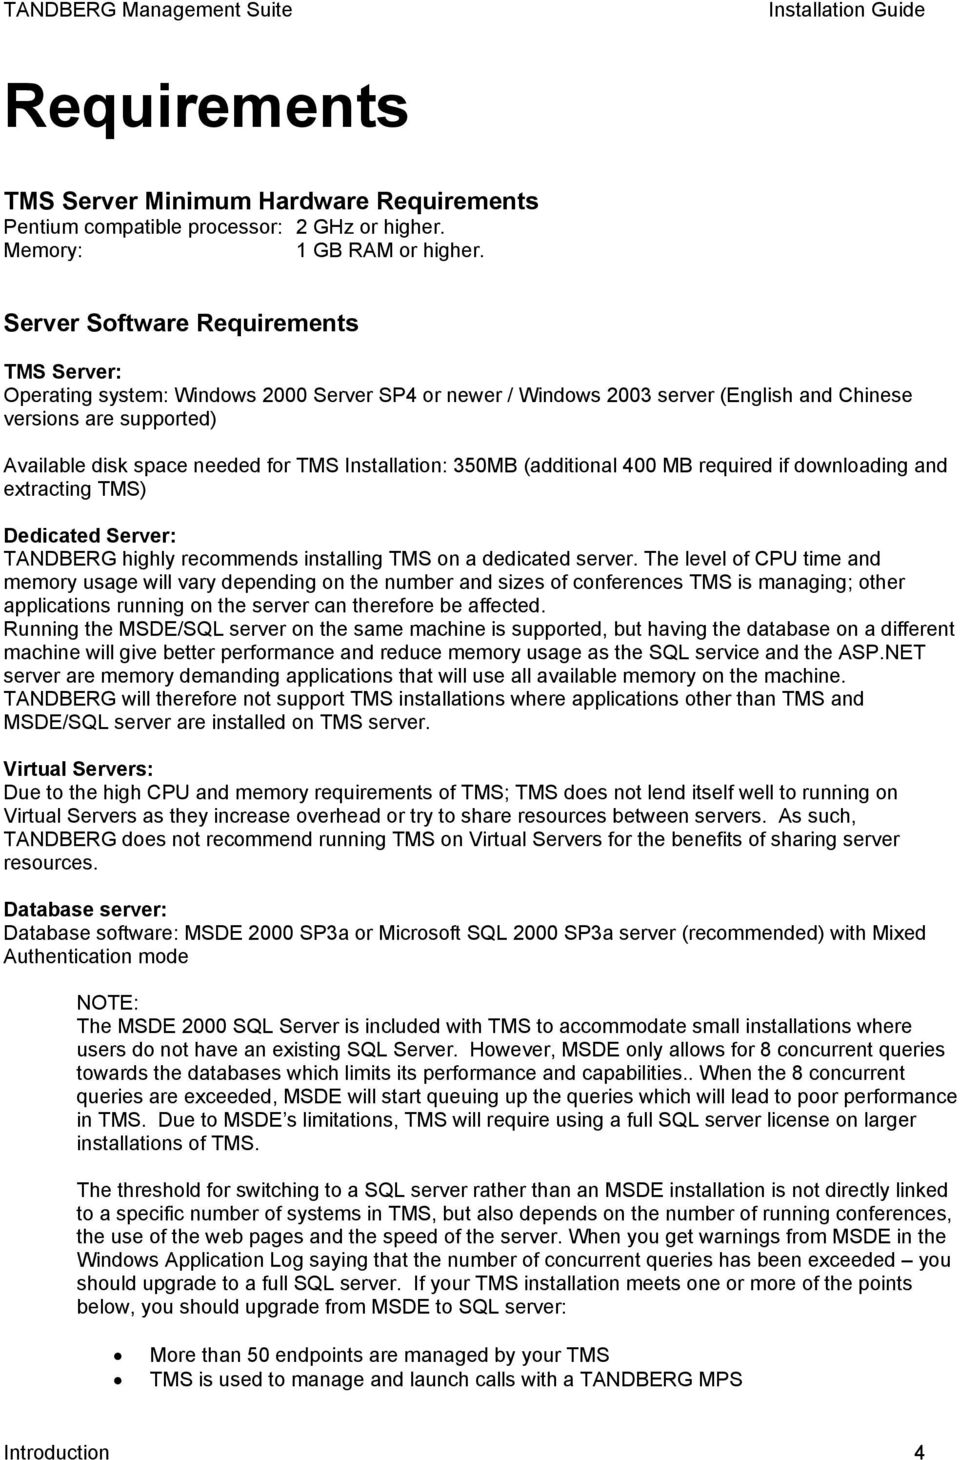 Installation: 350MB (additional 400 MB required if downloading and extracting TMS) Dedicated Server: TANDBERG highly recommends installing TMS on a dedicated server.